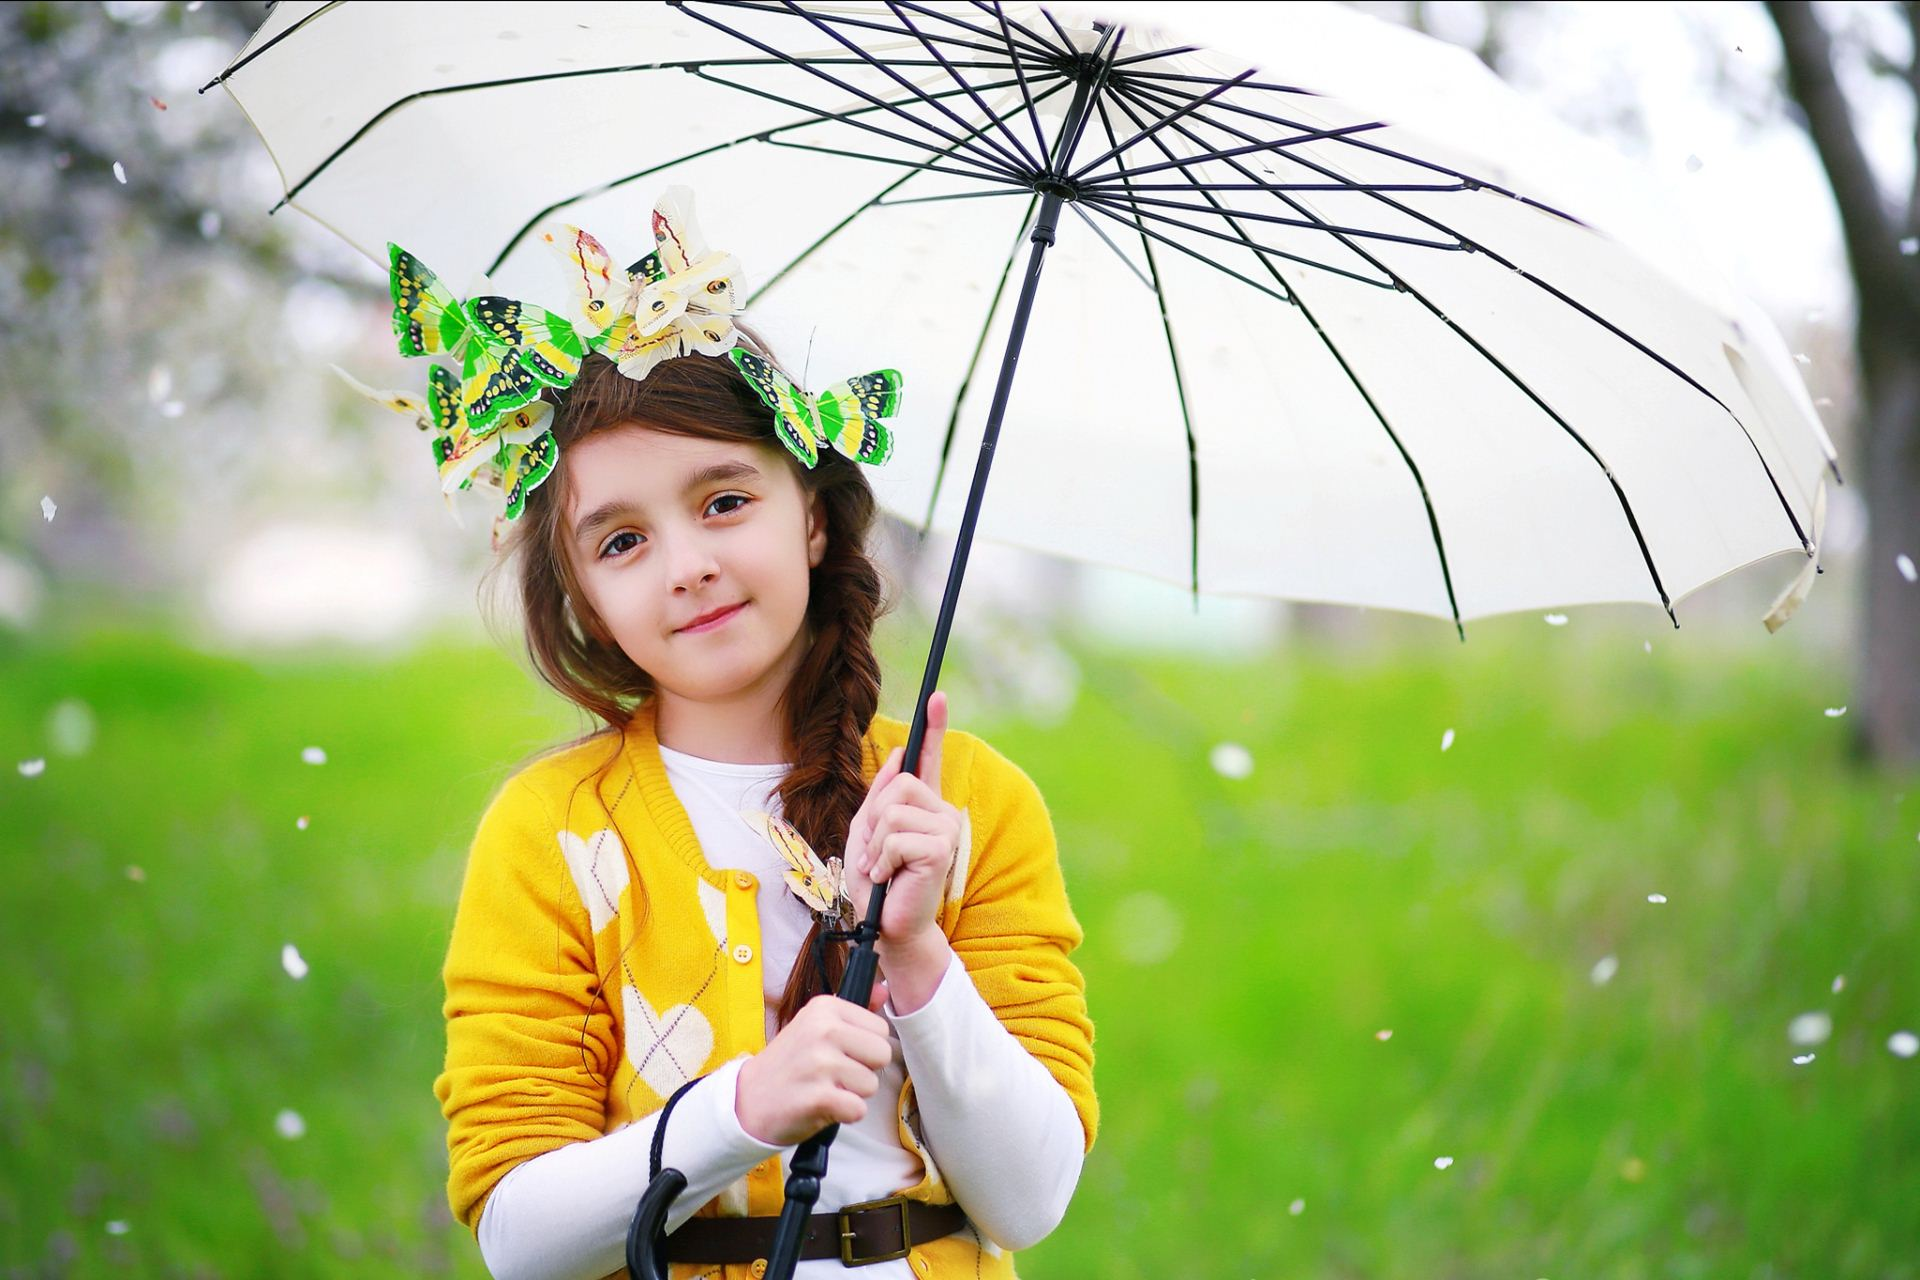 Cute Baby Girls Wallpapers HD Pictures One HD Wallpaper 1920x1280